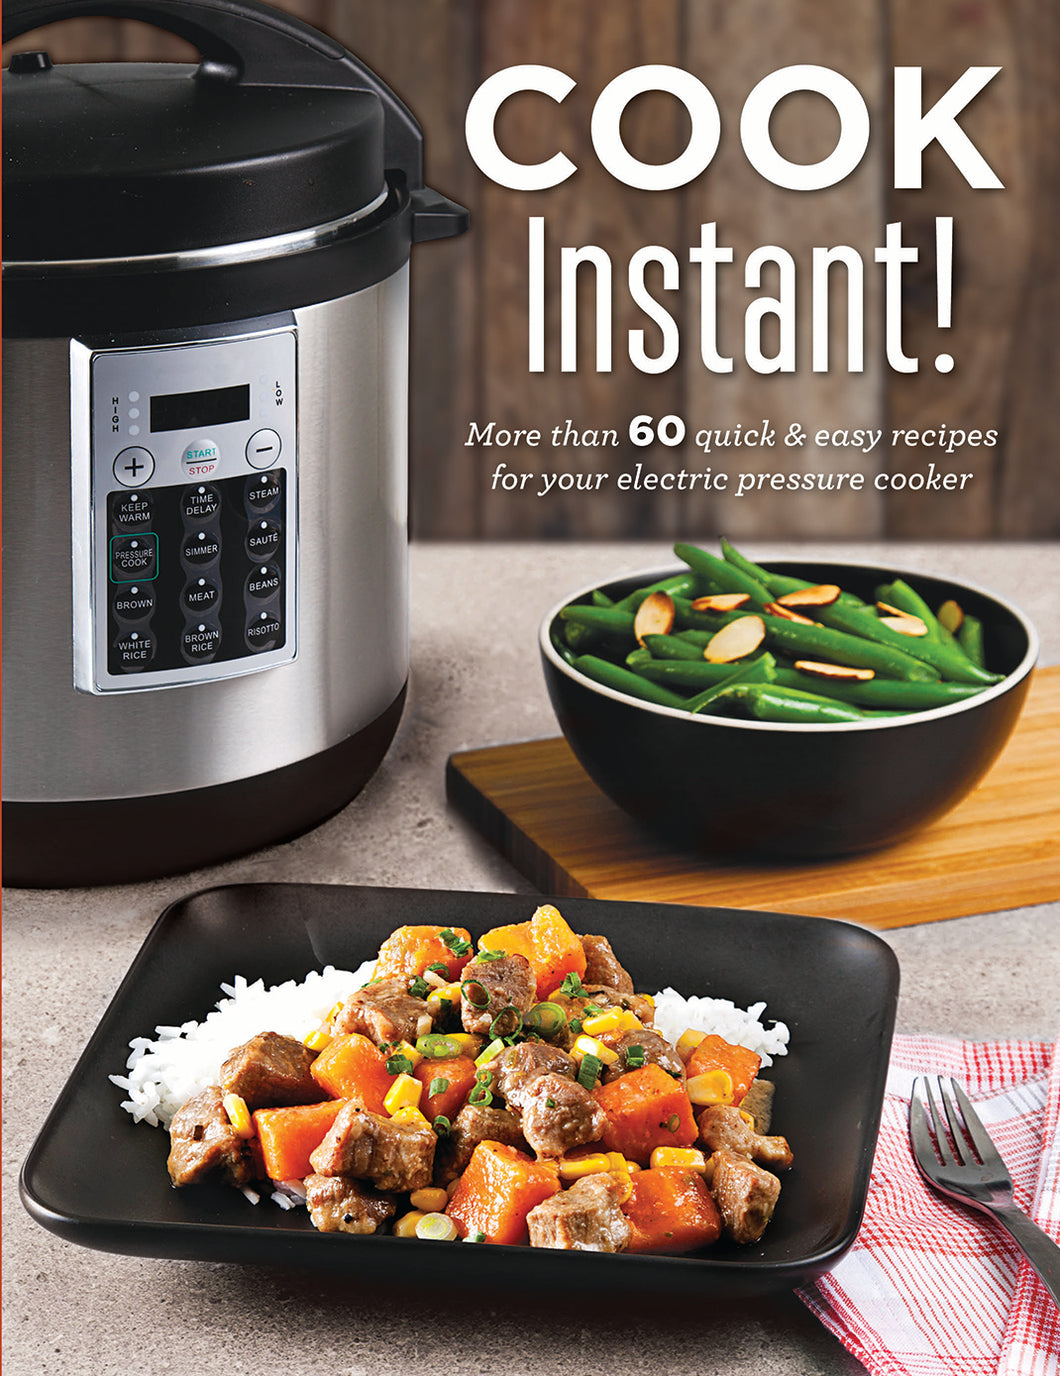 COOK INSTANT COOKBOOK